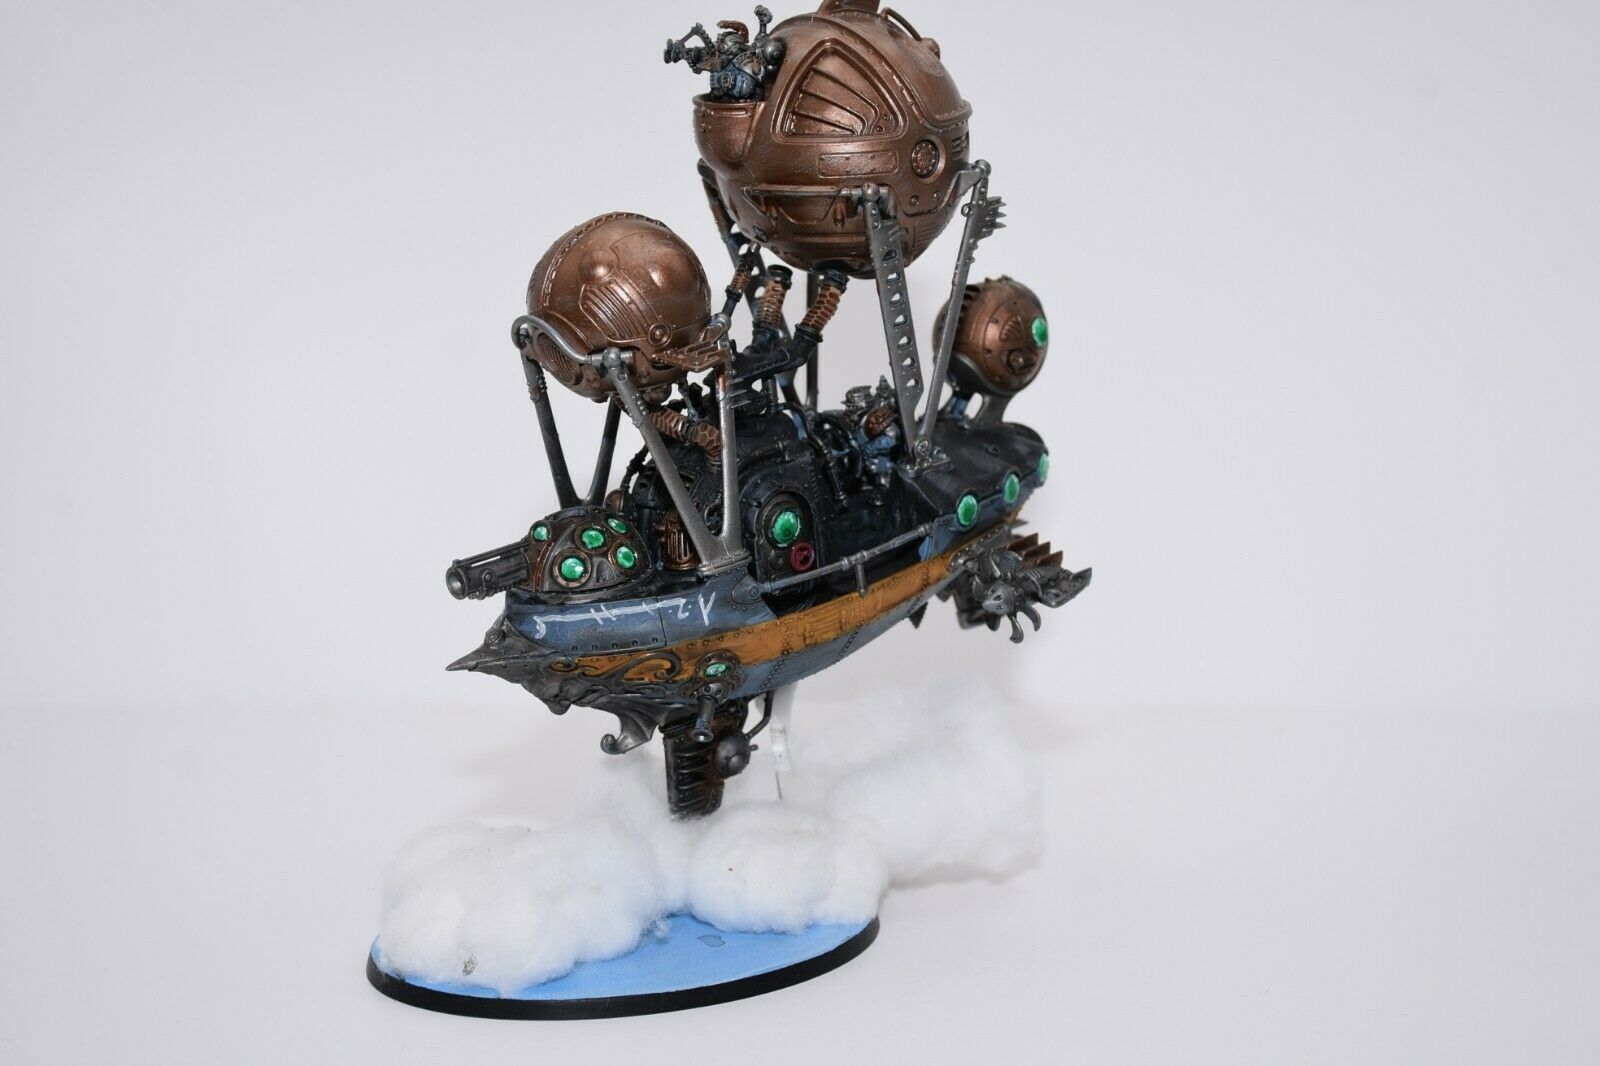 Warhammer Age of Sigmar Kharadron Overloads Frigate -Painted- L1